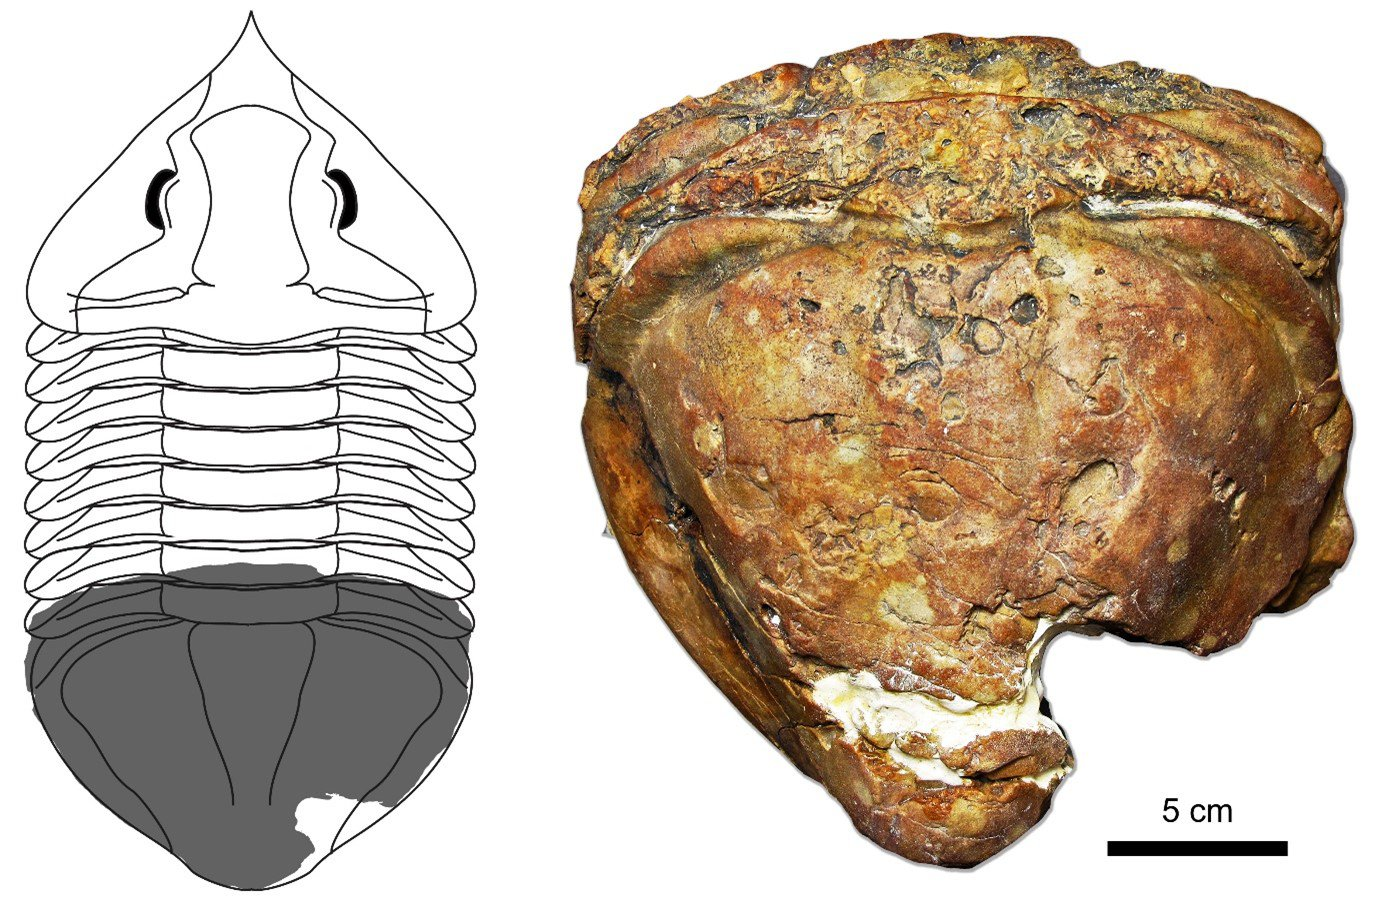 Lycophron titan sp. nov., the holotype specimen on display at Geoscience Australia (right) and a life reconstruction of the animal showing the portion preserved (left).